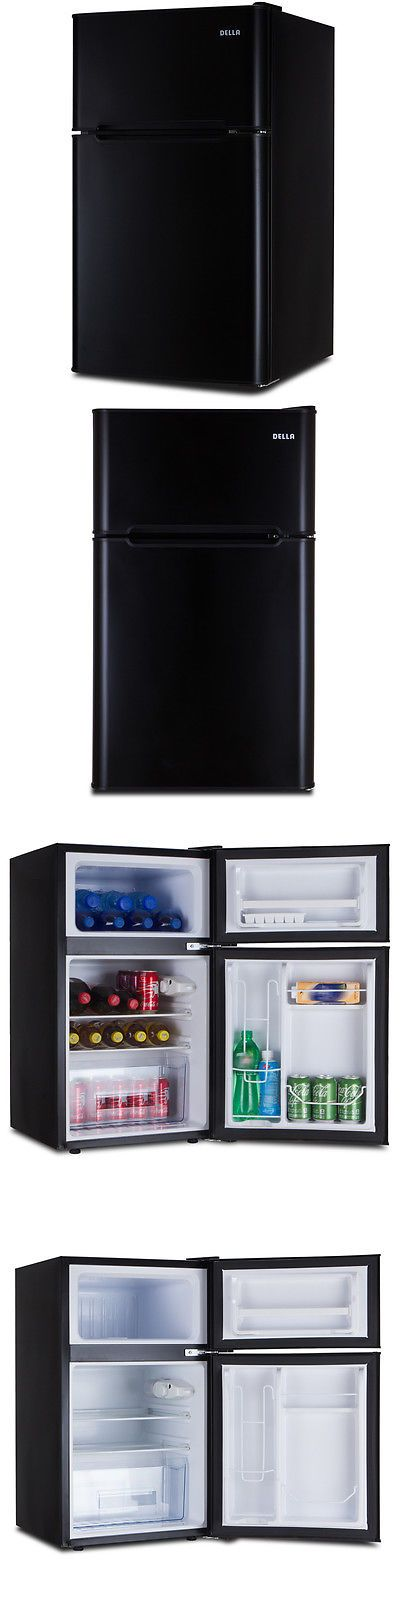 Major Appliances: New 3.2 Cu .Ft. 2-Door Mini Dorm Upright Compact Refrigerator And Freezer Fridge -> BUY IT NOW ONLY: $159.97 on eBay!